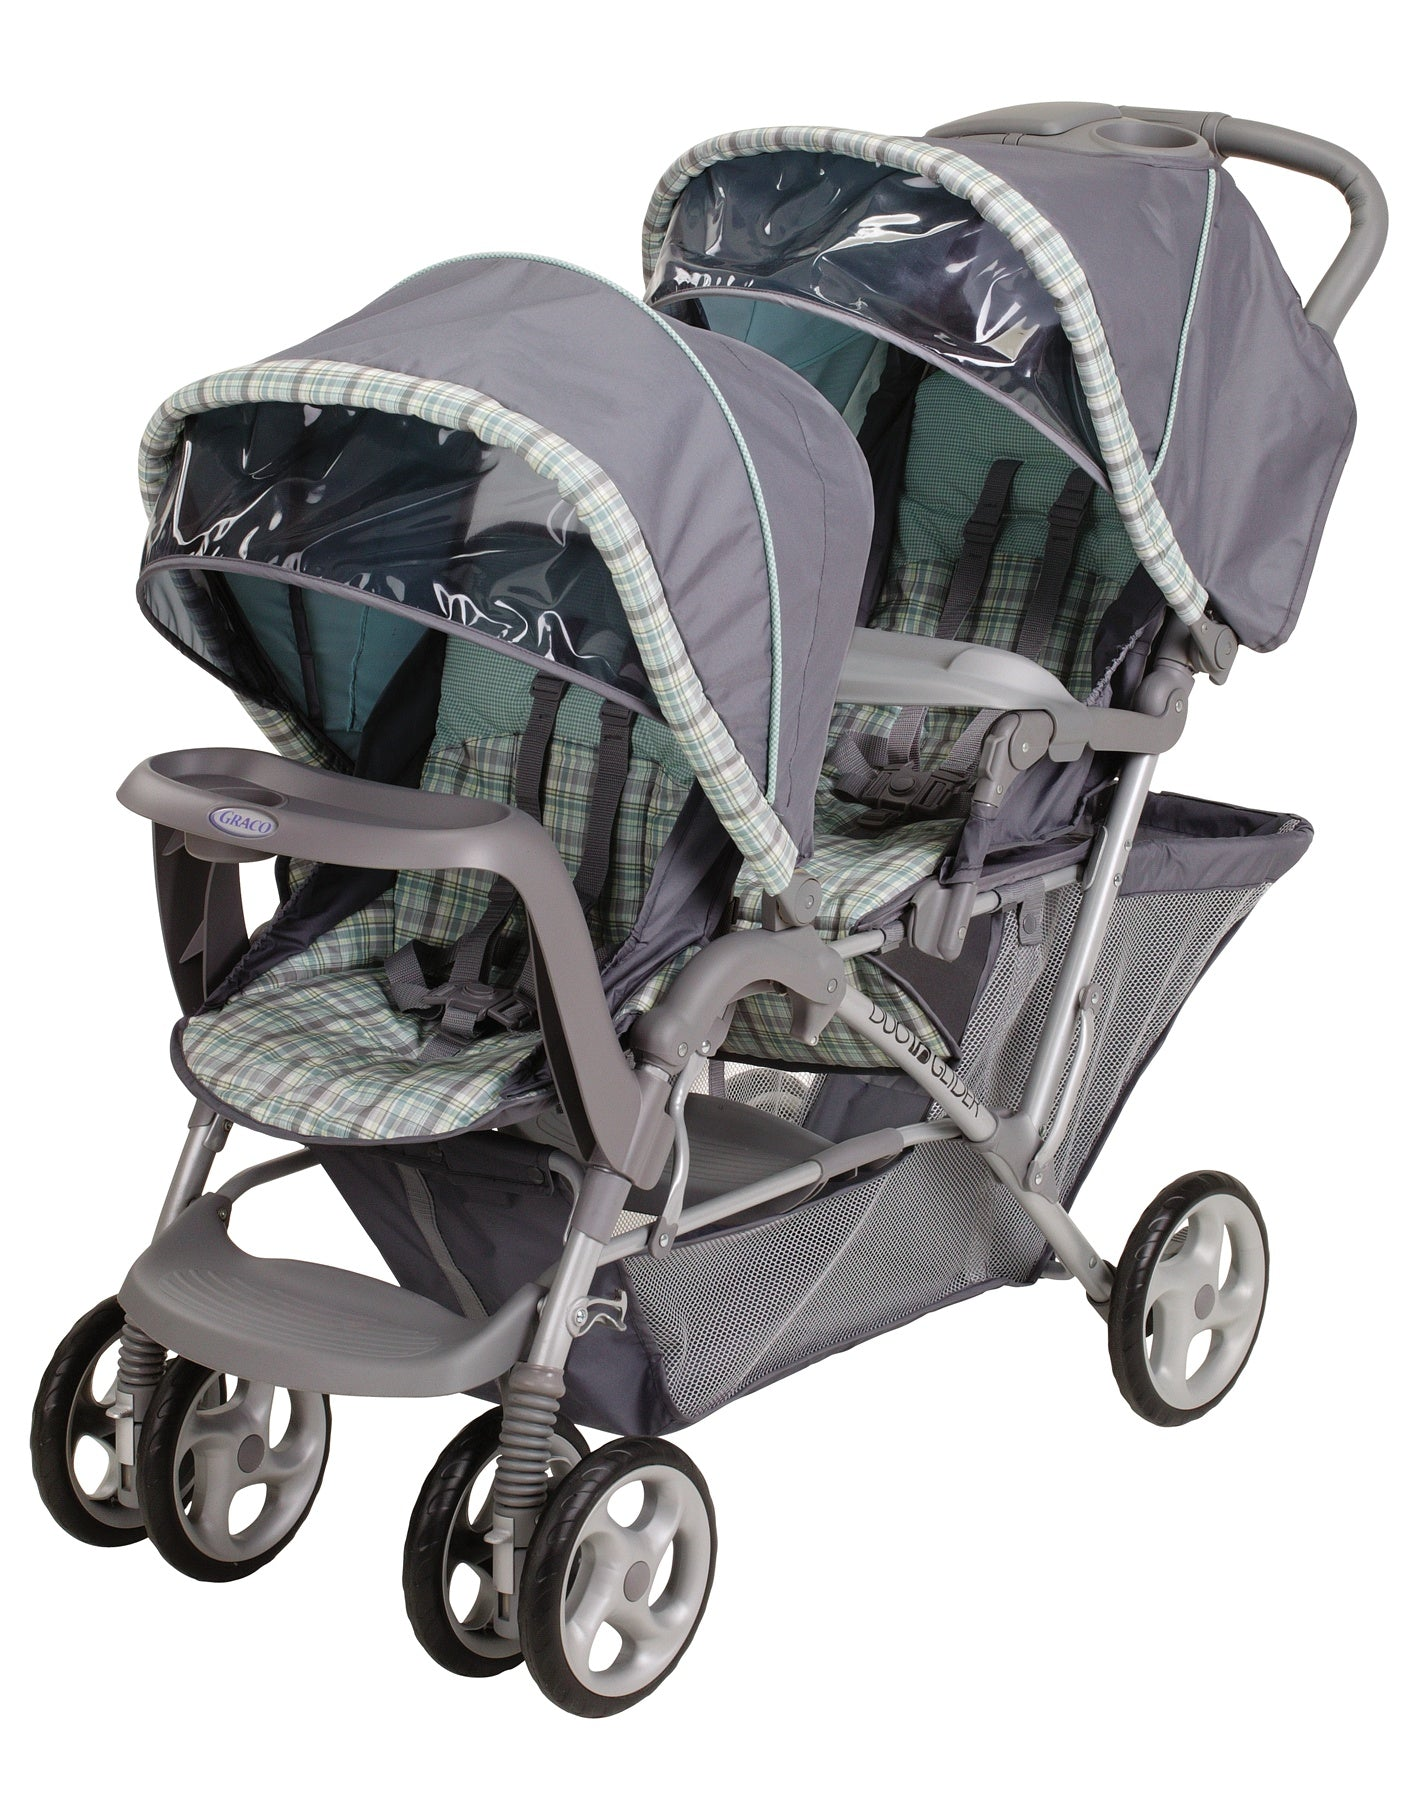 Stroller, Best Double Stroller or Triple Stroller for Your Baby